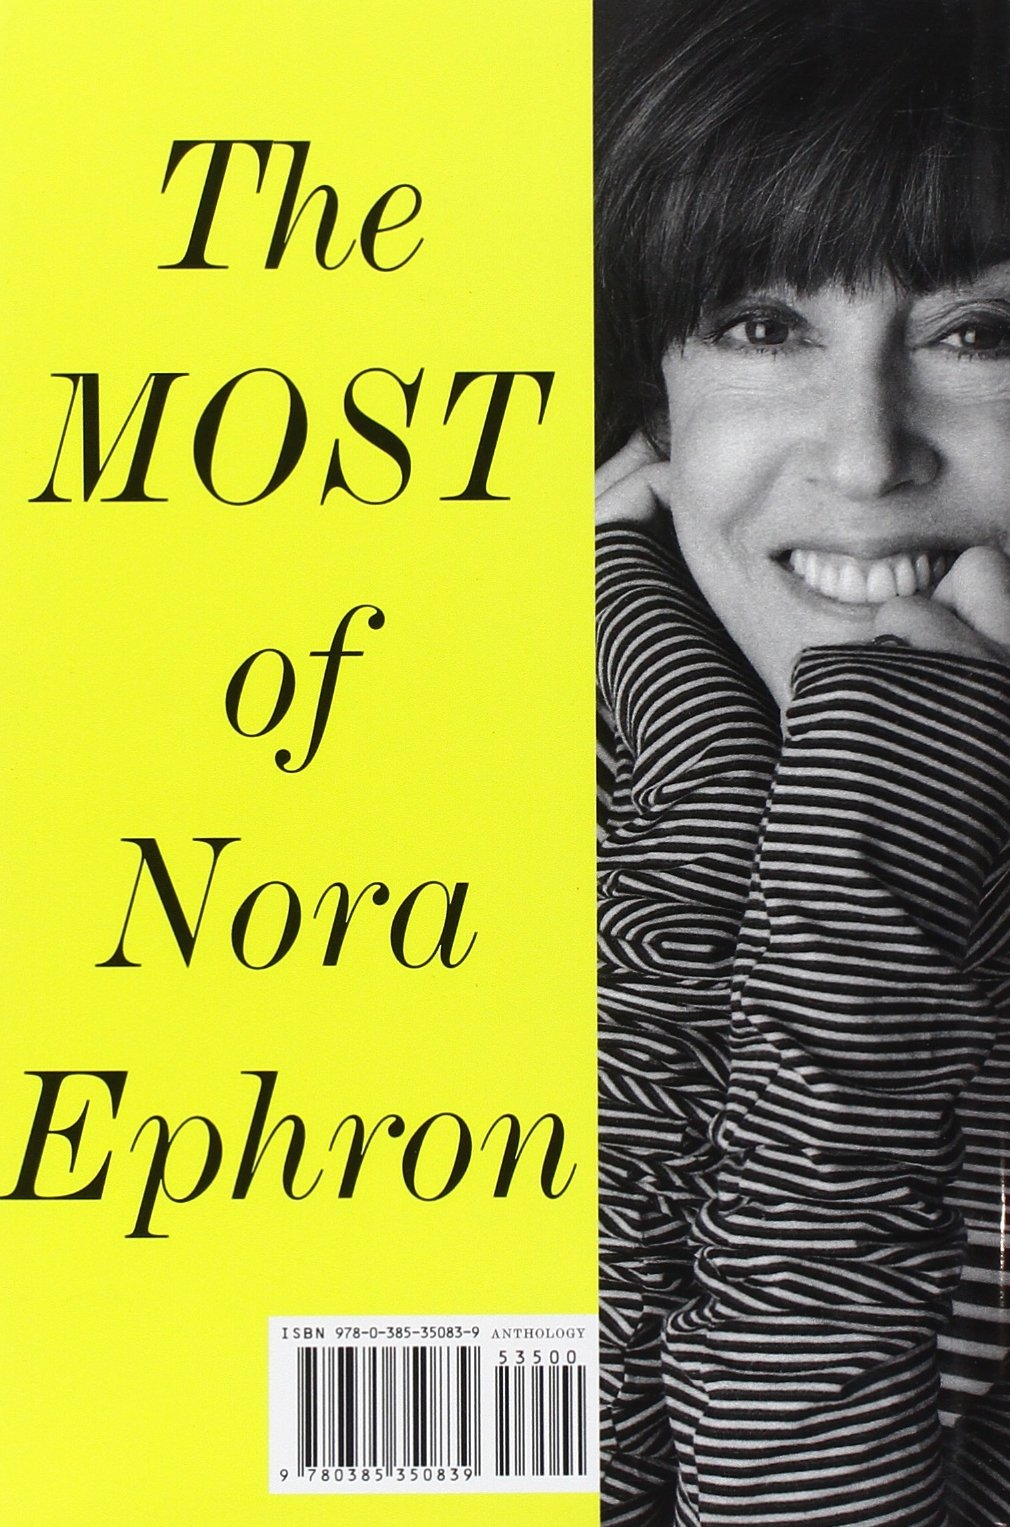 com the most of nora ephron nora ephron  com the most of nora ephron 9780385350839 nora ephron books